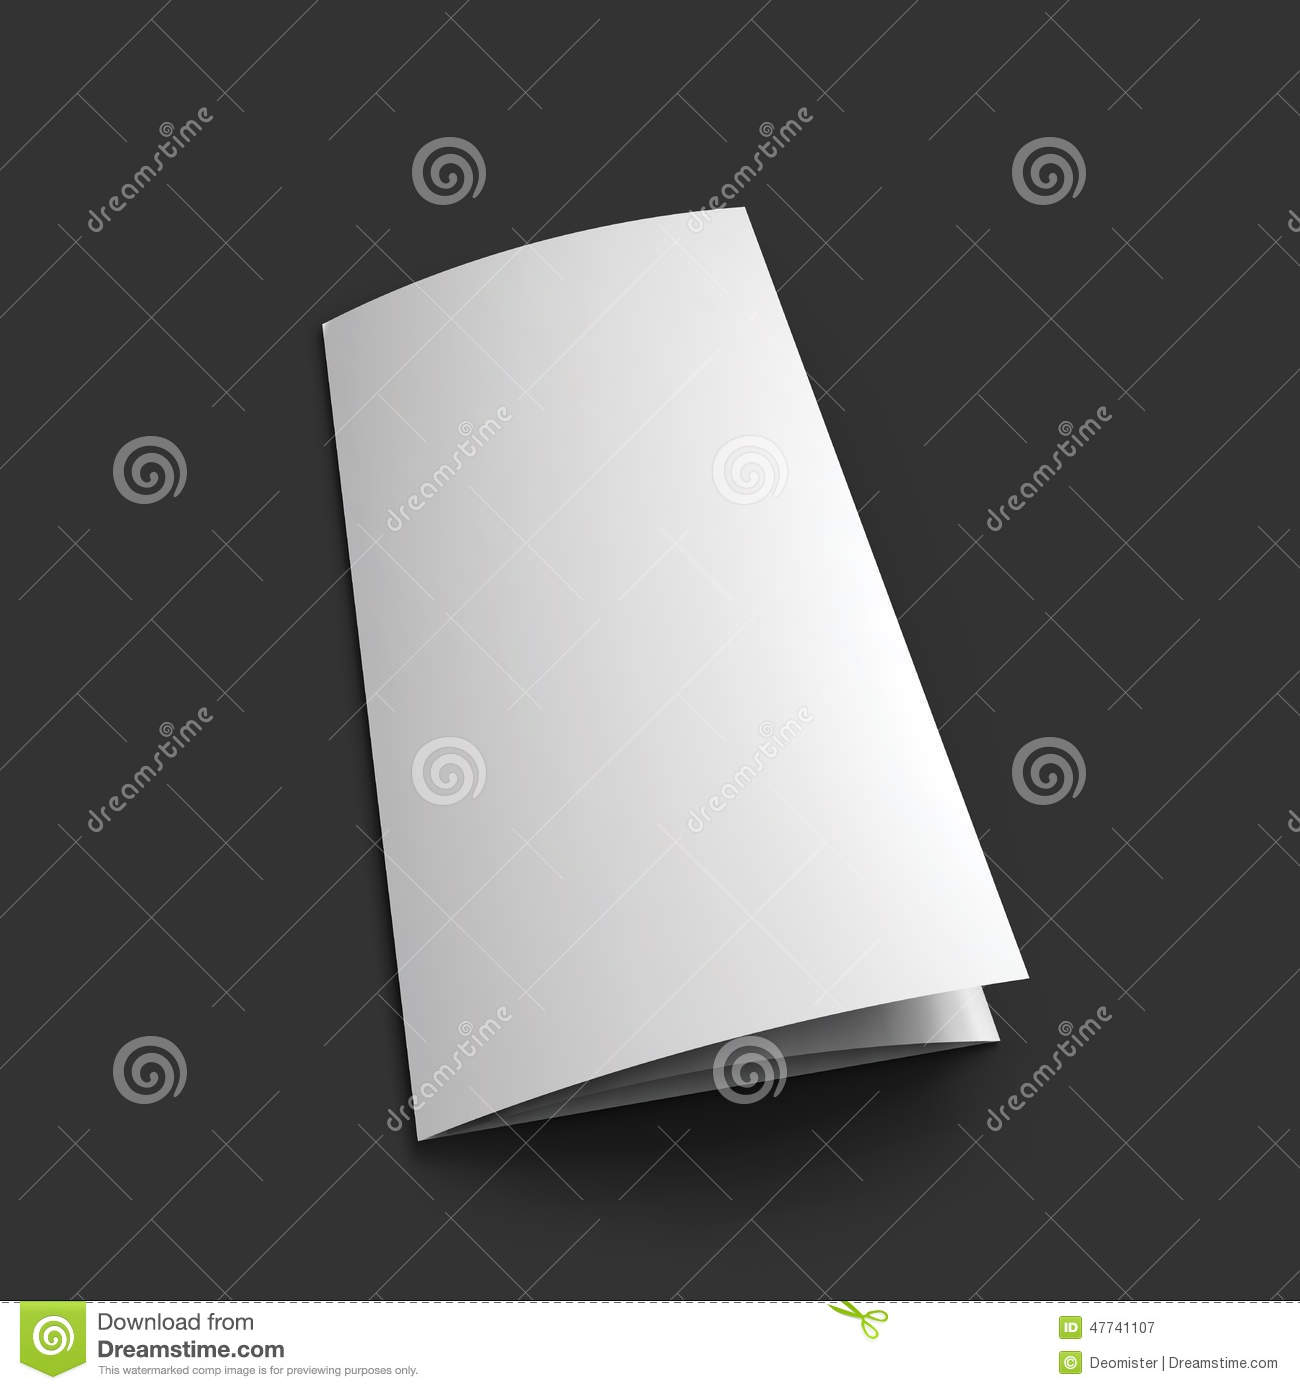 Blank trifold paper brochure mockup template stock vector for Paper brochure holder template